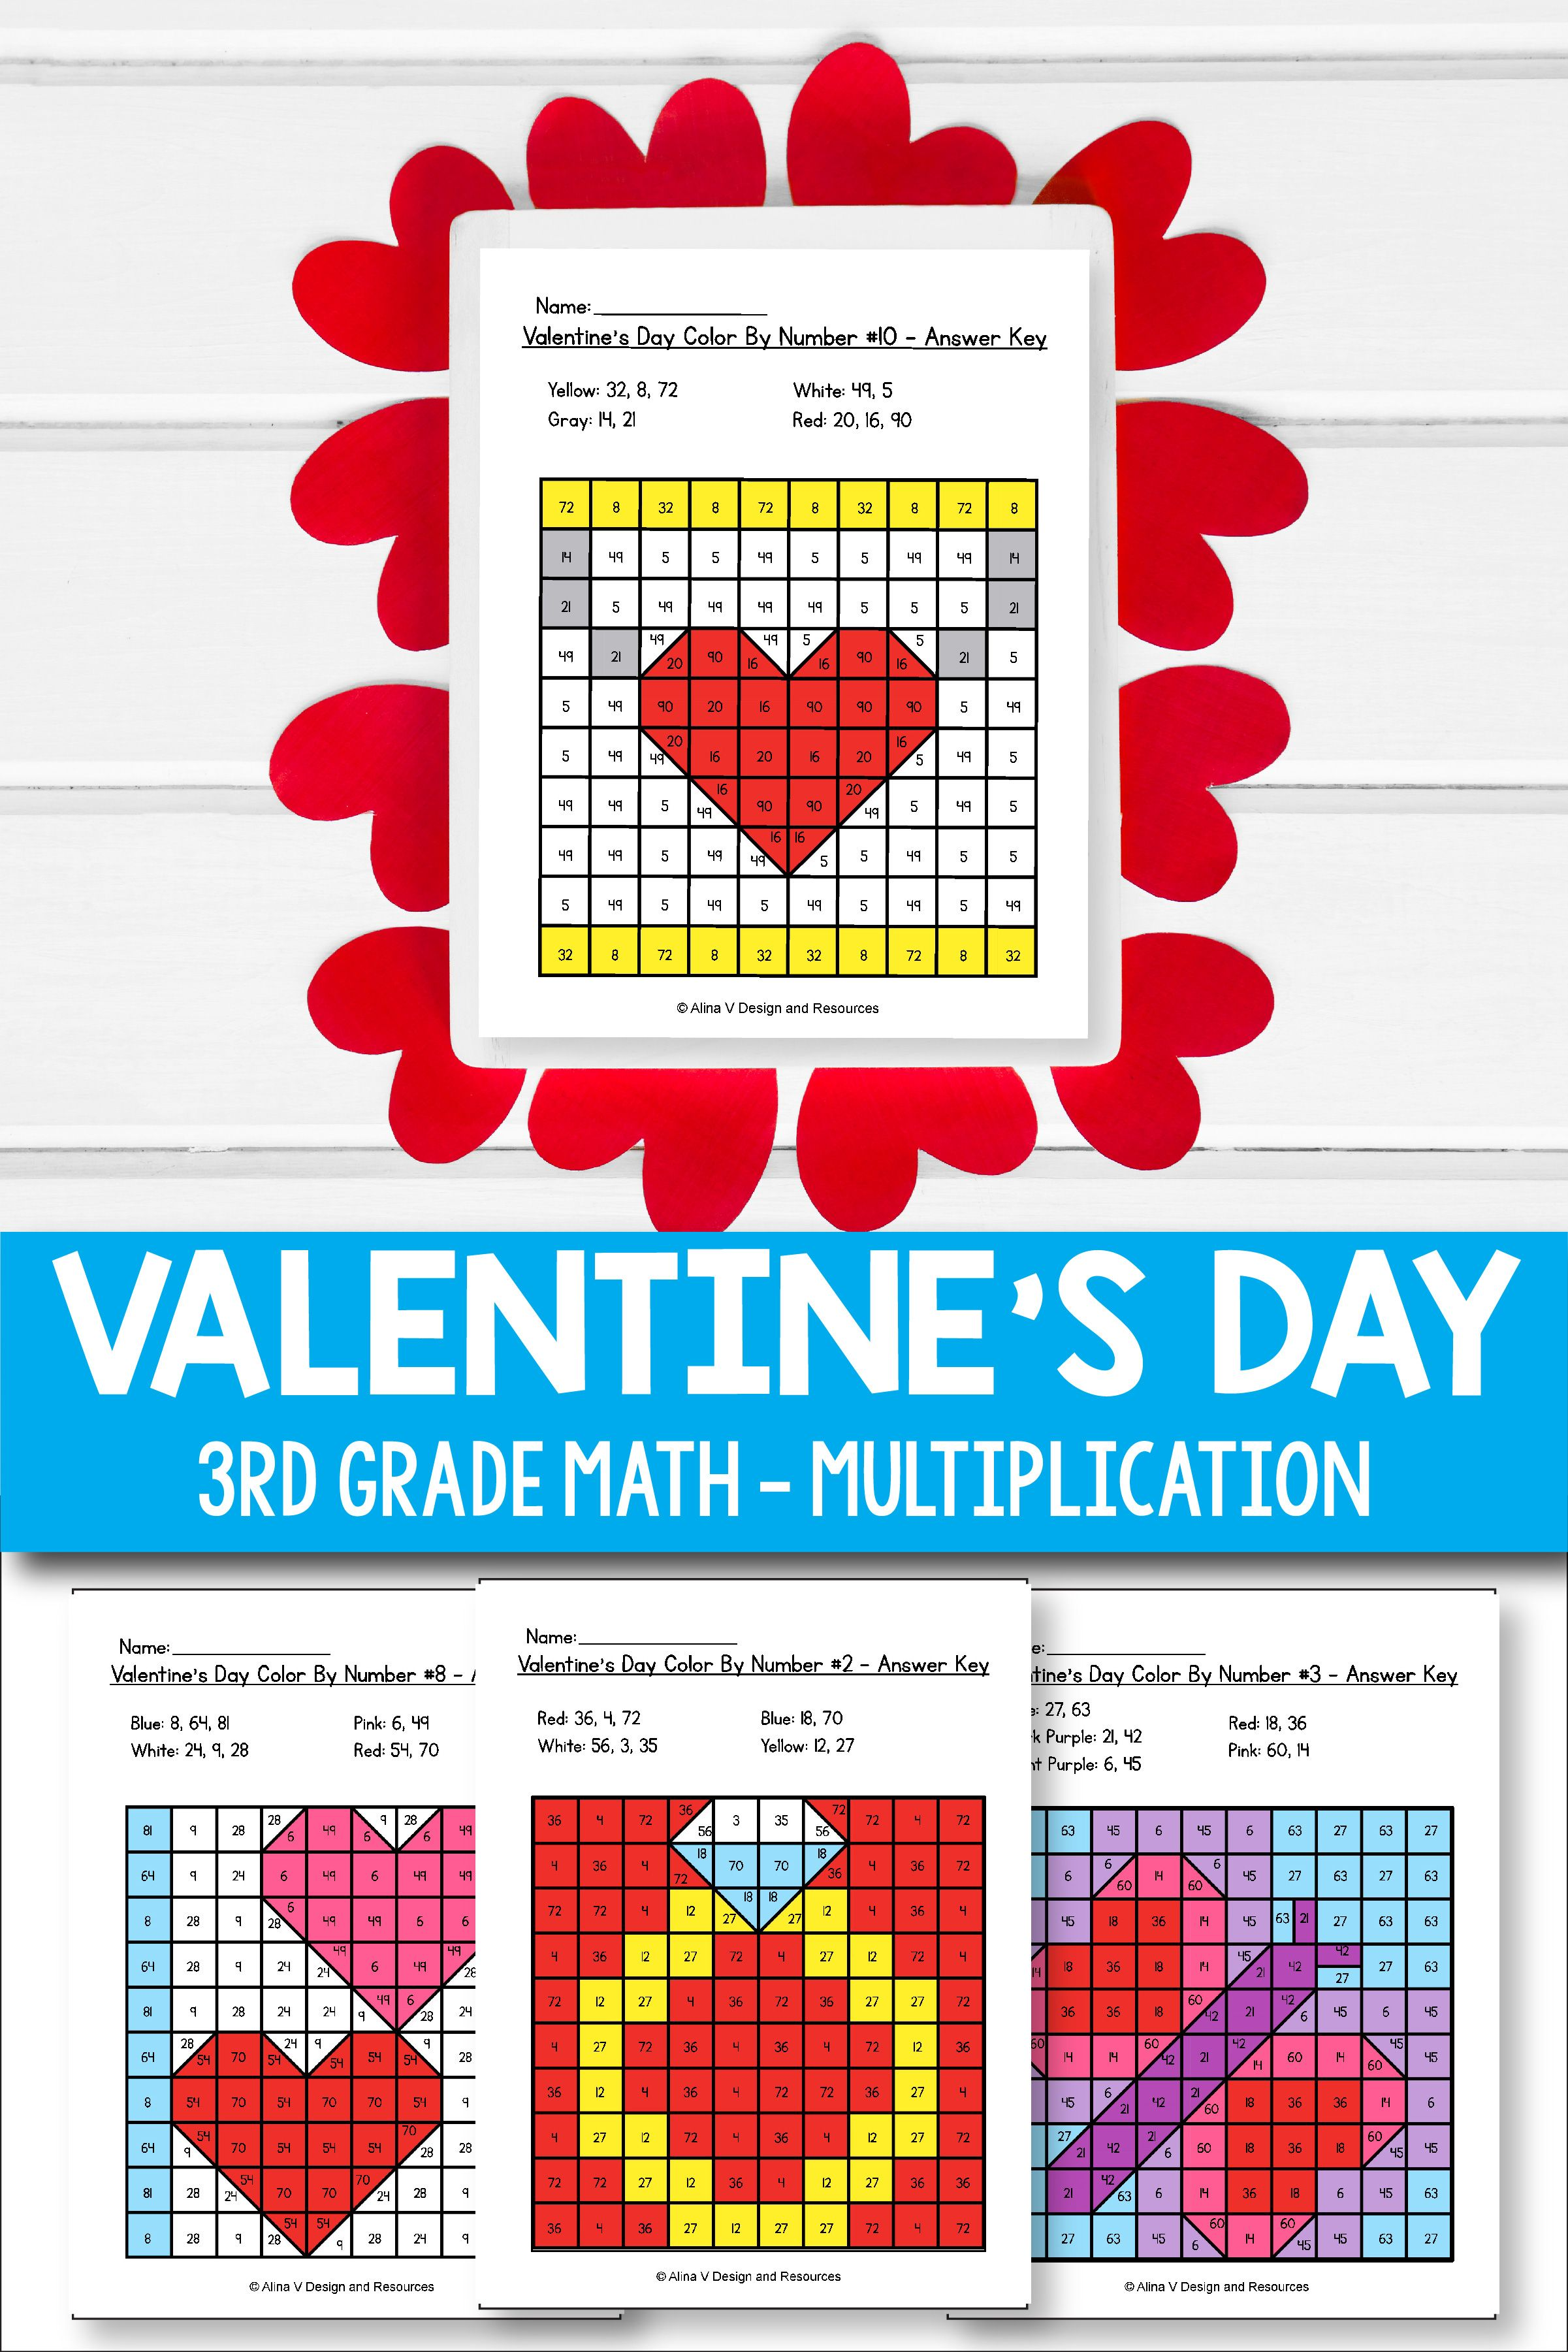 small resolution of Valentine's Day Multiplication Math Worksheets for 3rd grade kids is fun  with these hundreds chart printabl…   Fun printables